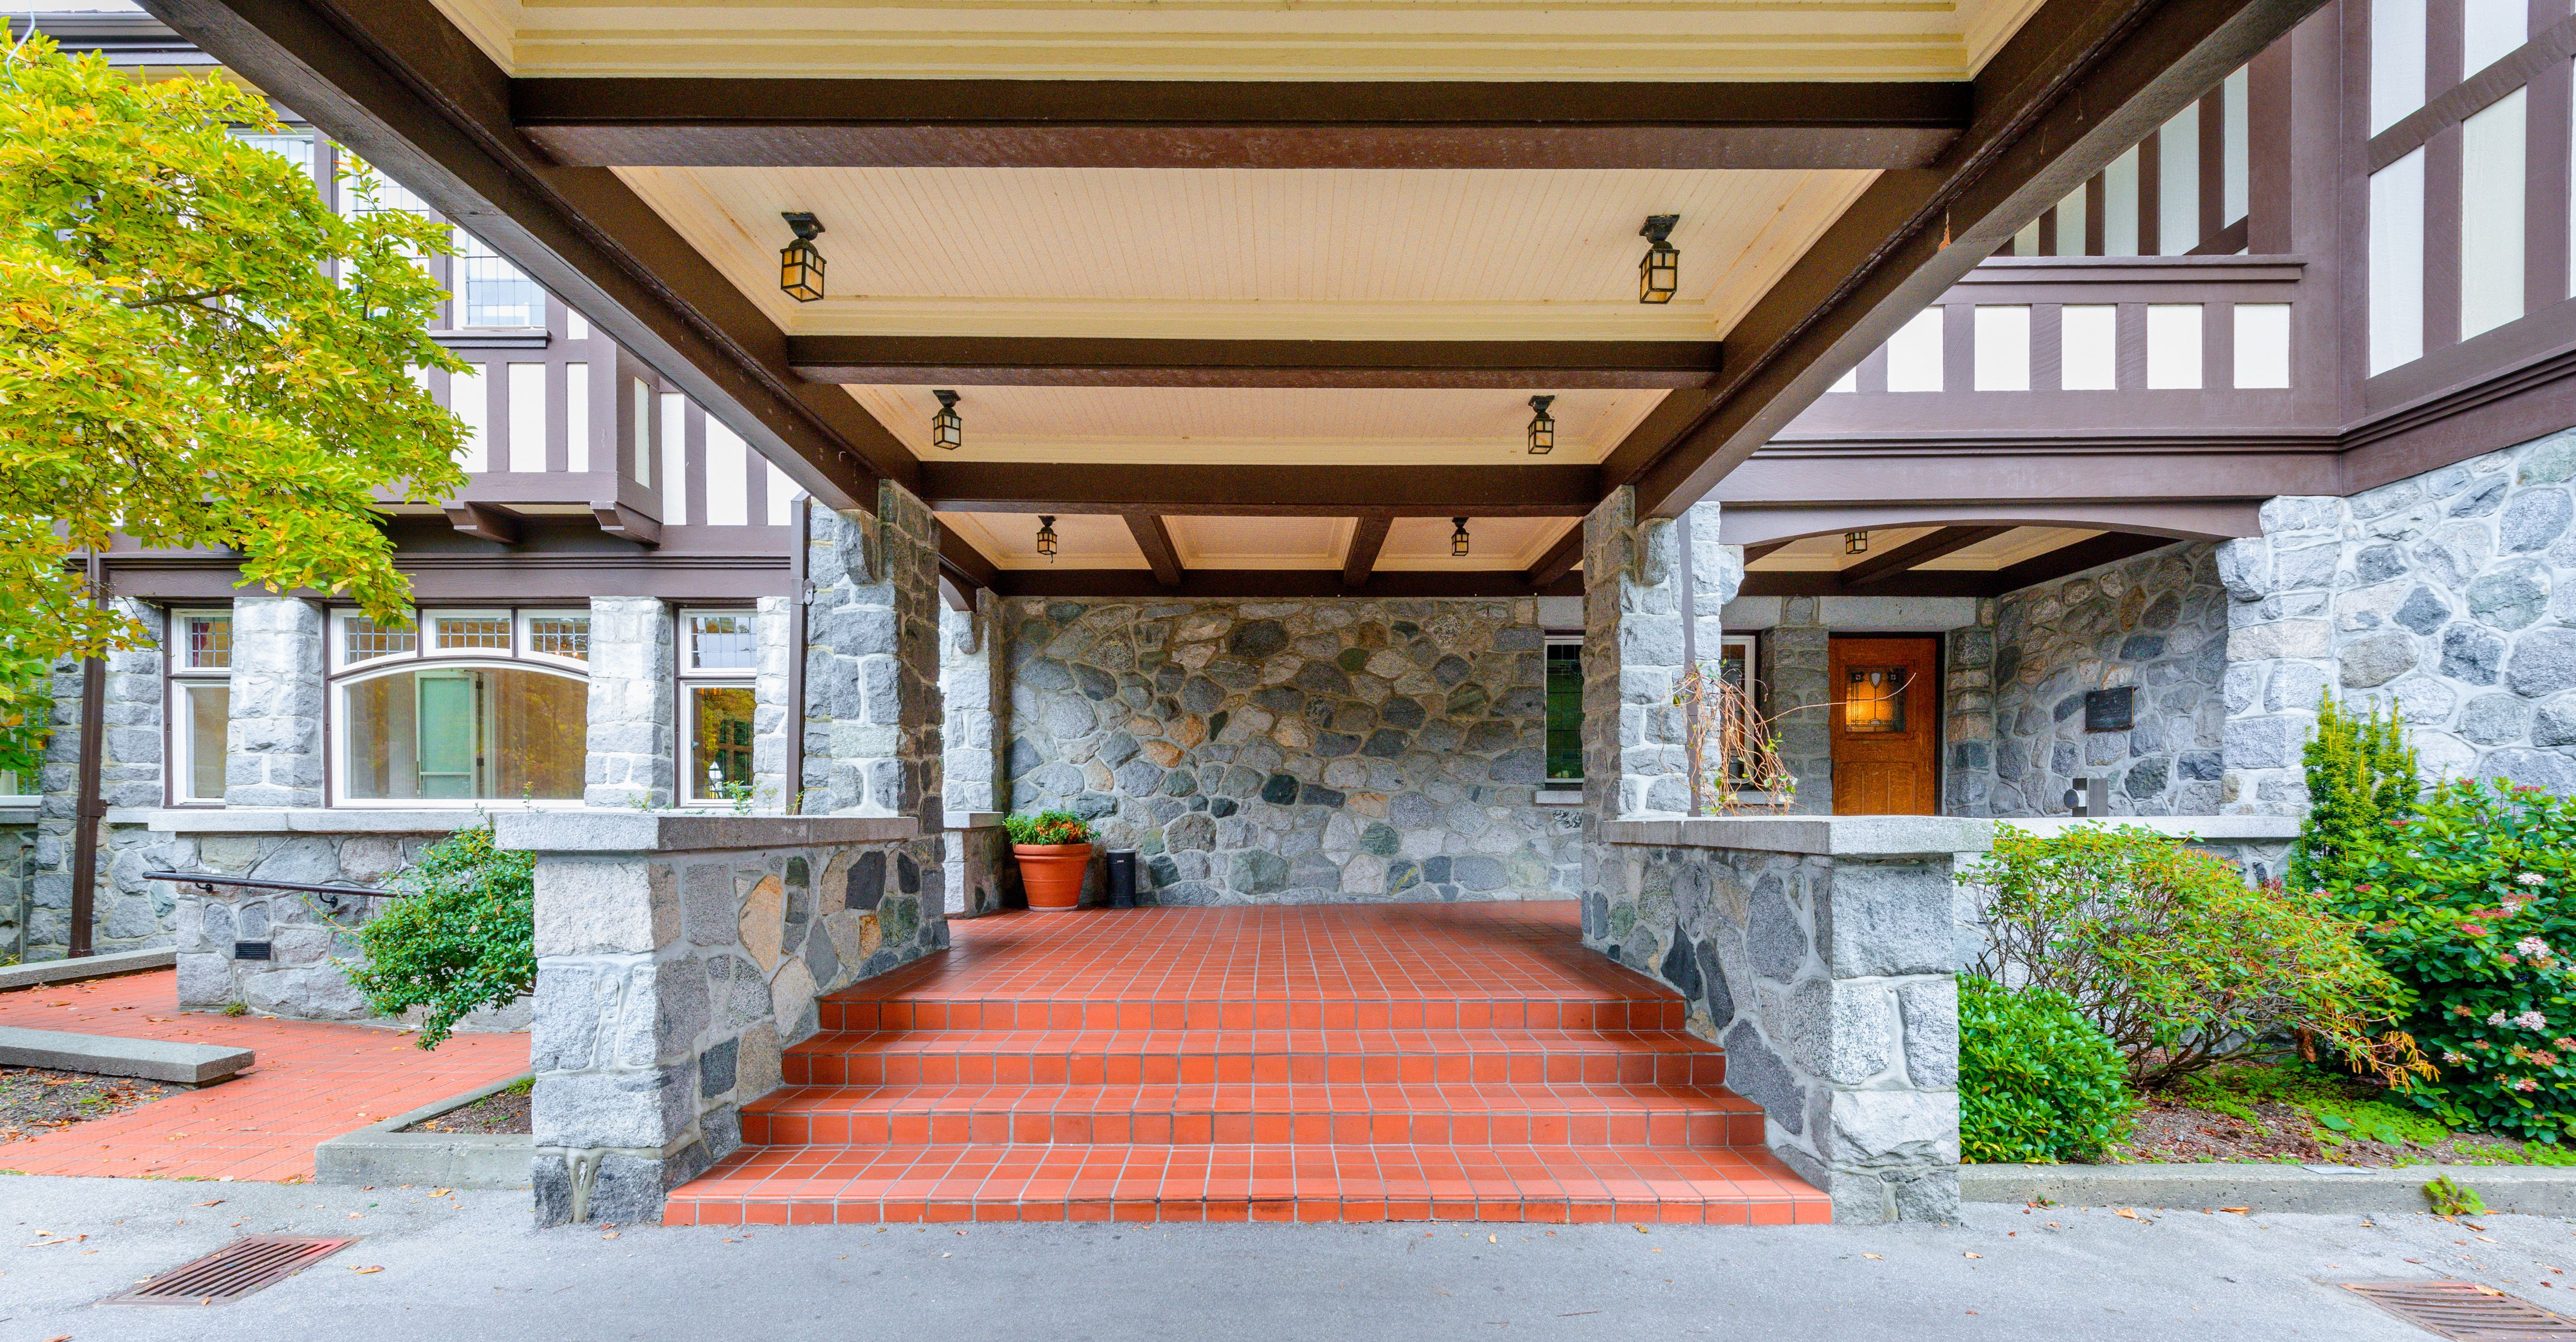 Pin by Wendy T on Vancouver, BC wedding | Park homes ...